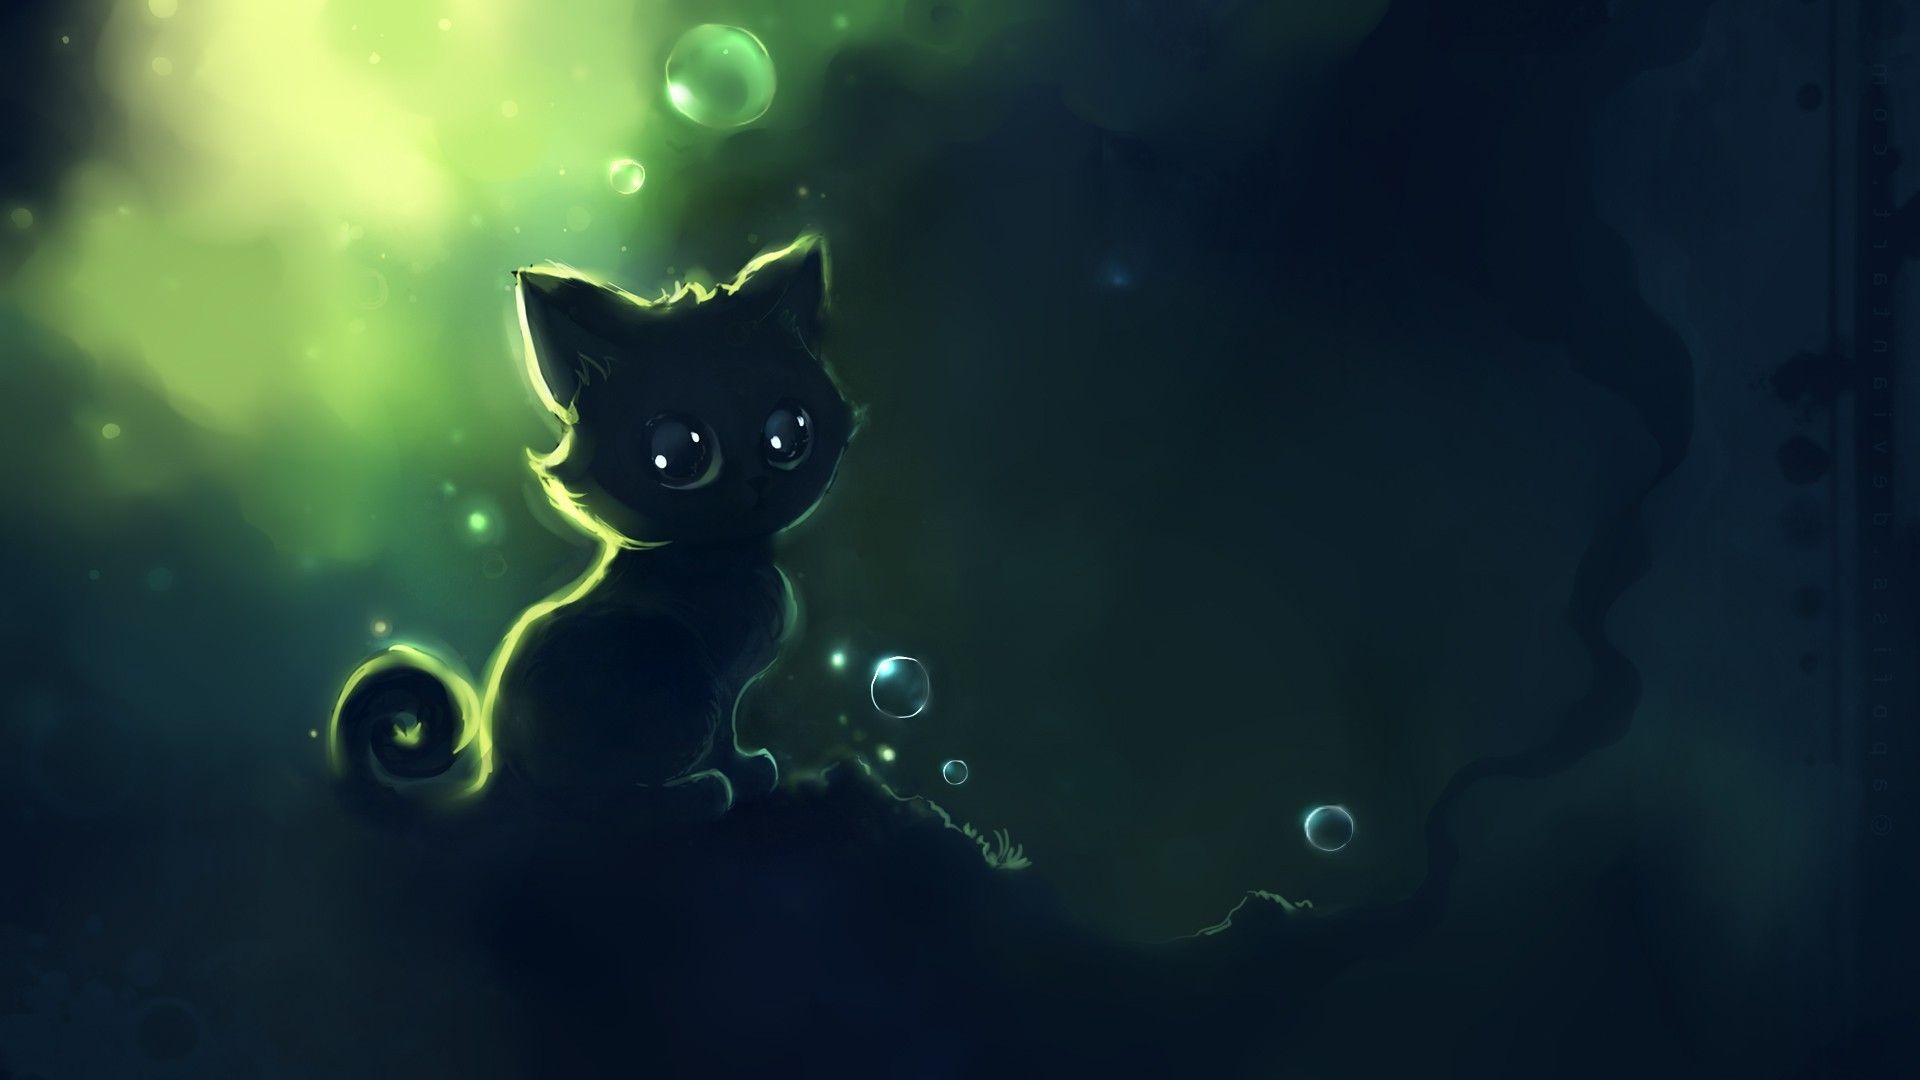 Dark Wallpaper Anime Cat Cat Artwork Cat Wallpaper Cute Anime Cat